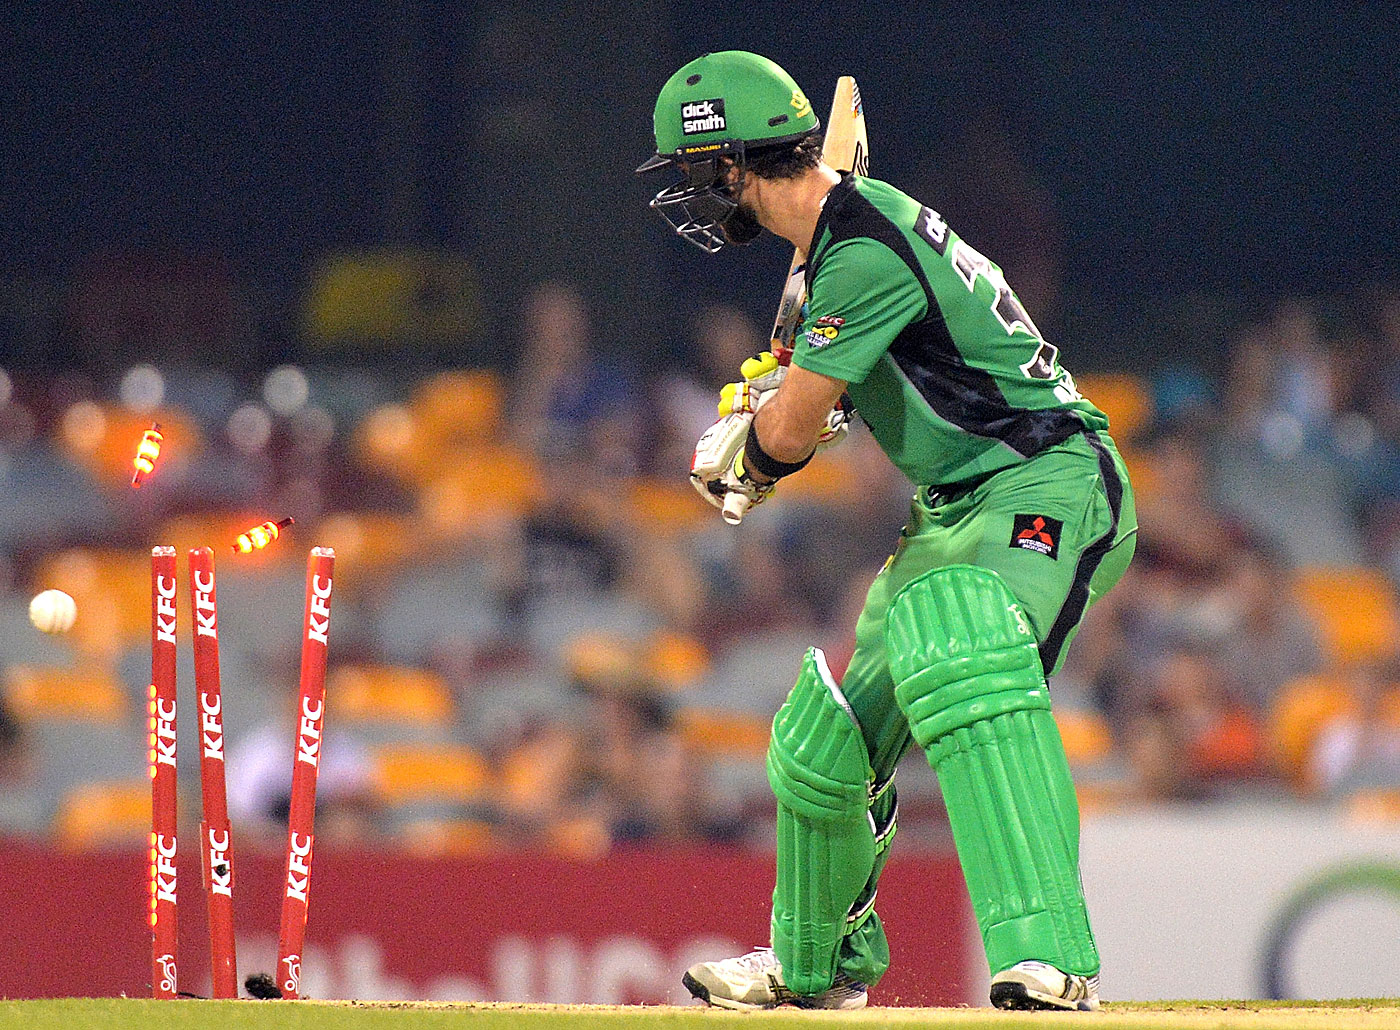 T20, unlike other cricket formats, doesn't encourage batsmen to value their wicket